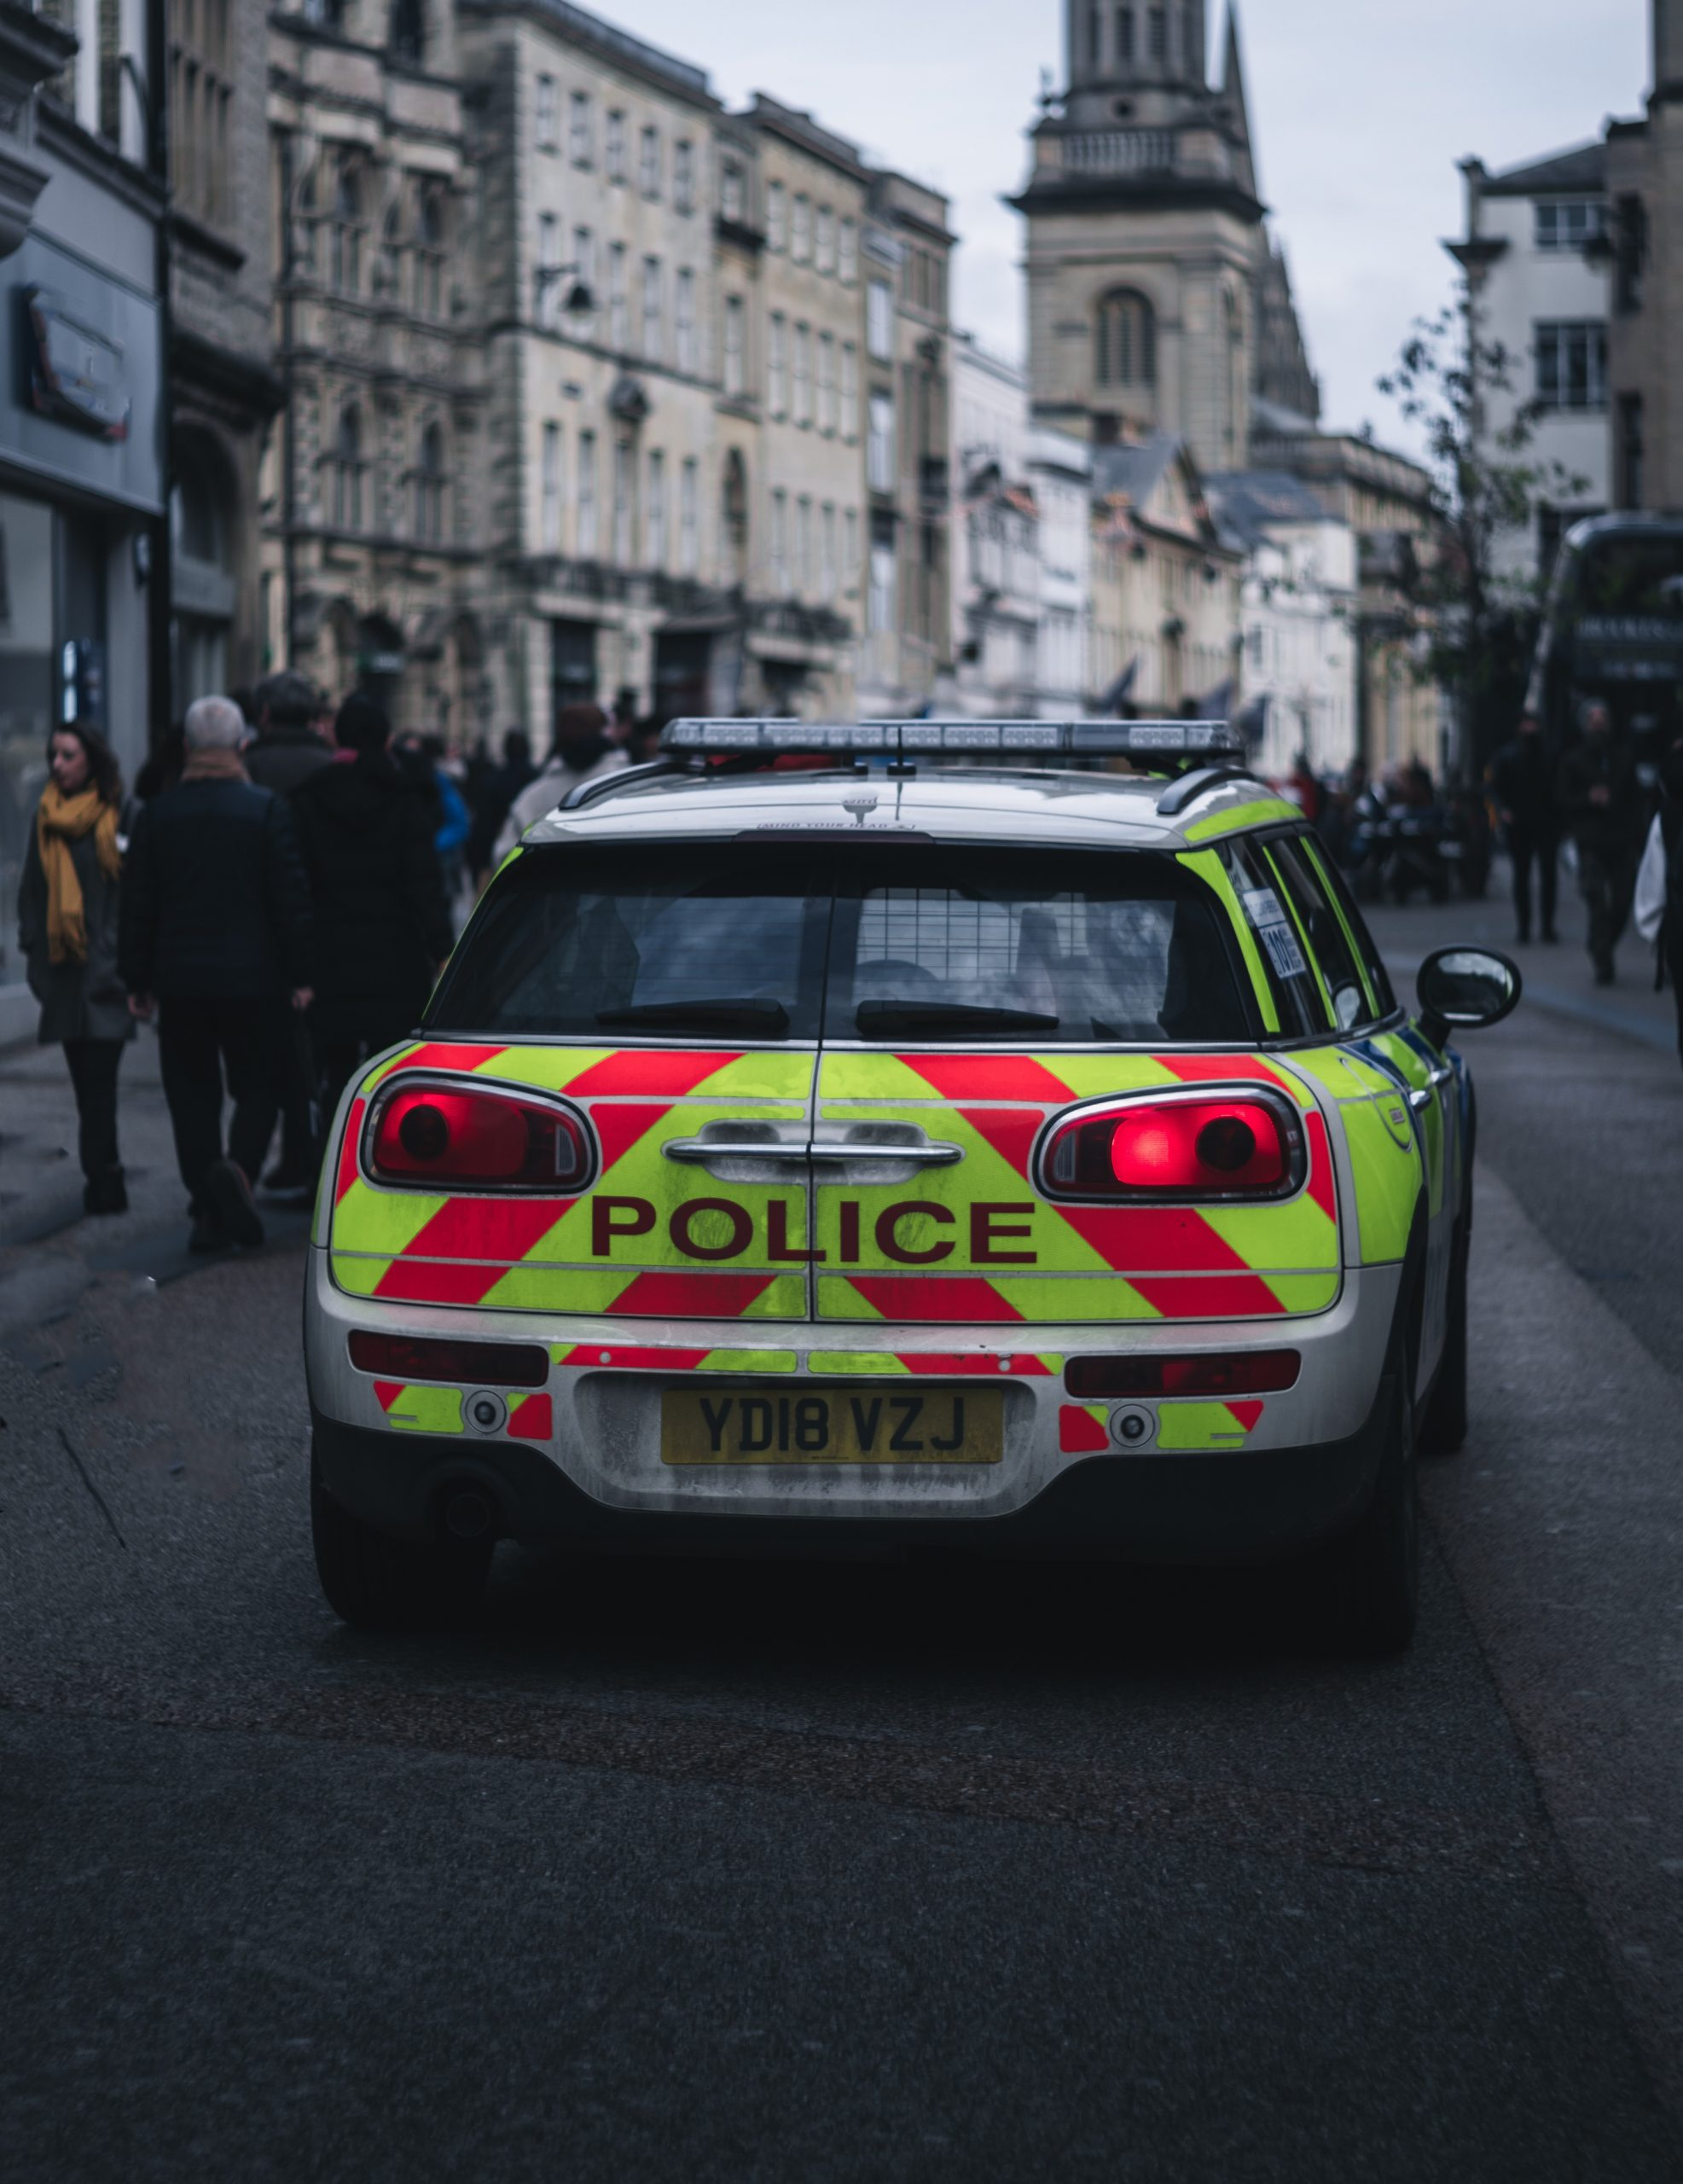 Picture of the back of a police car